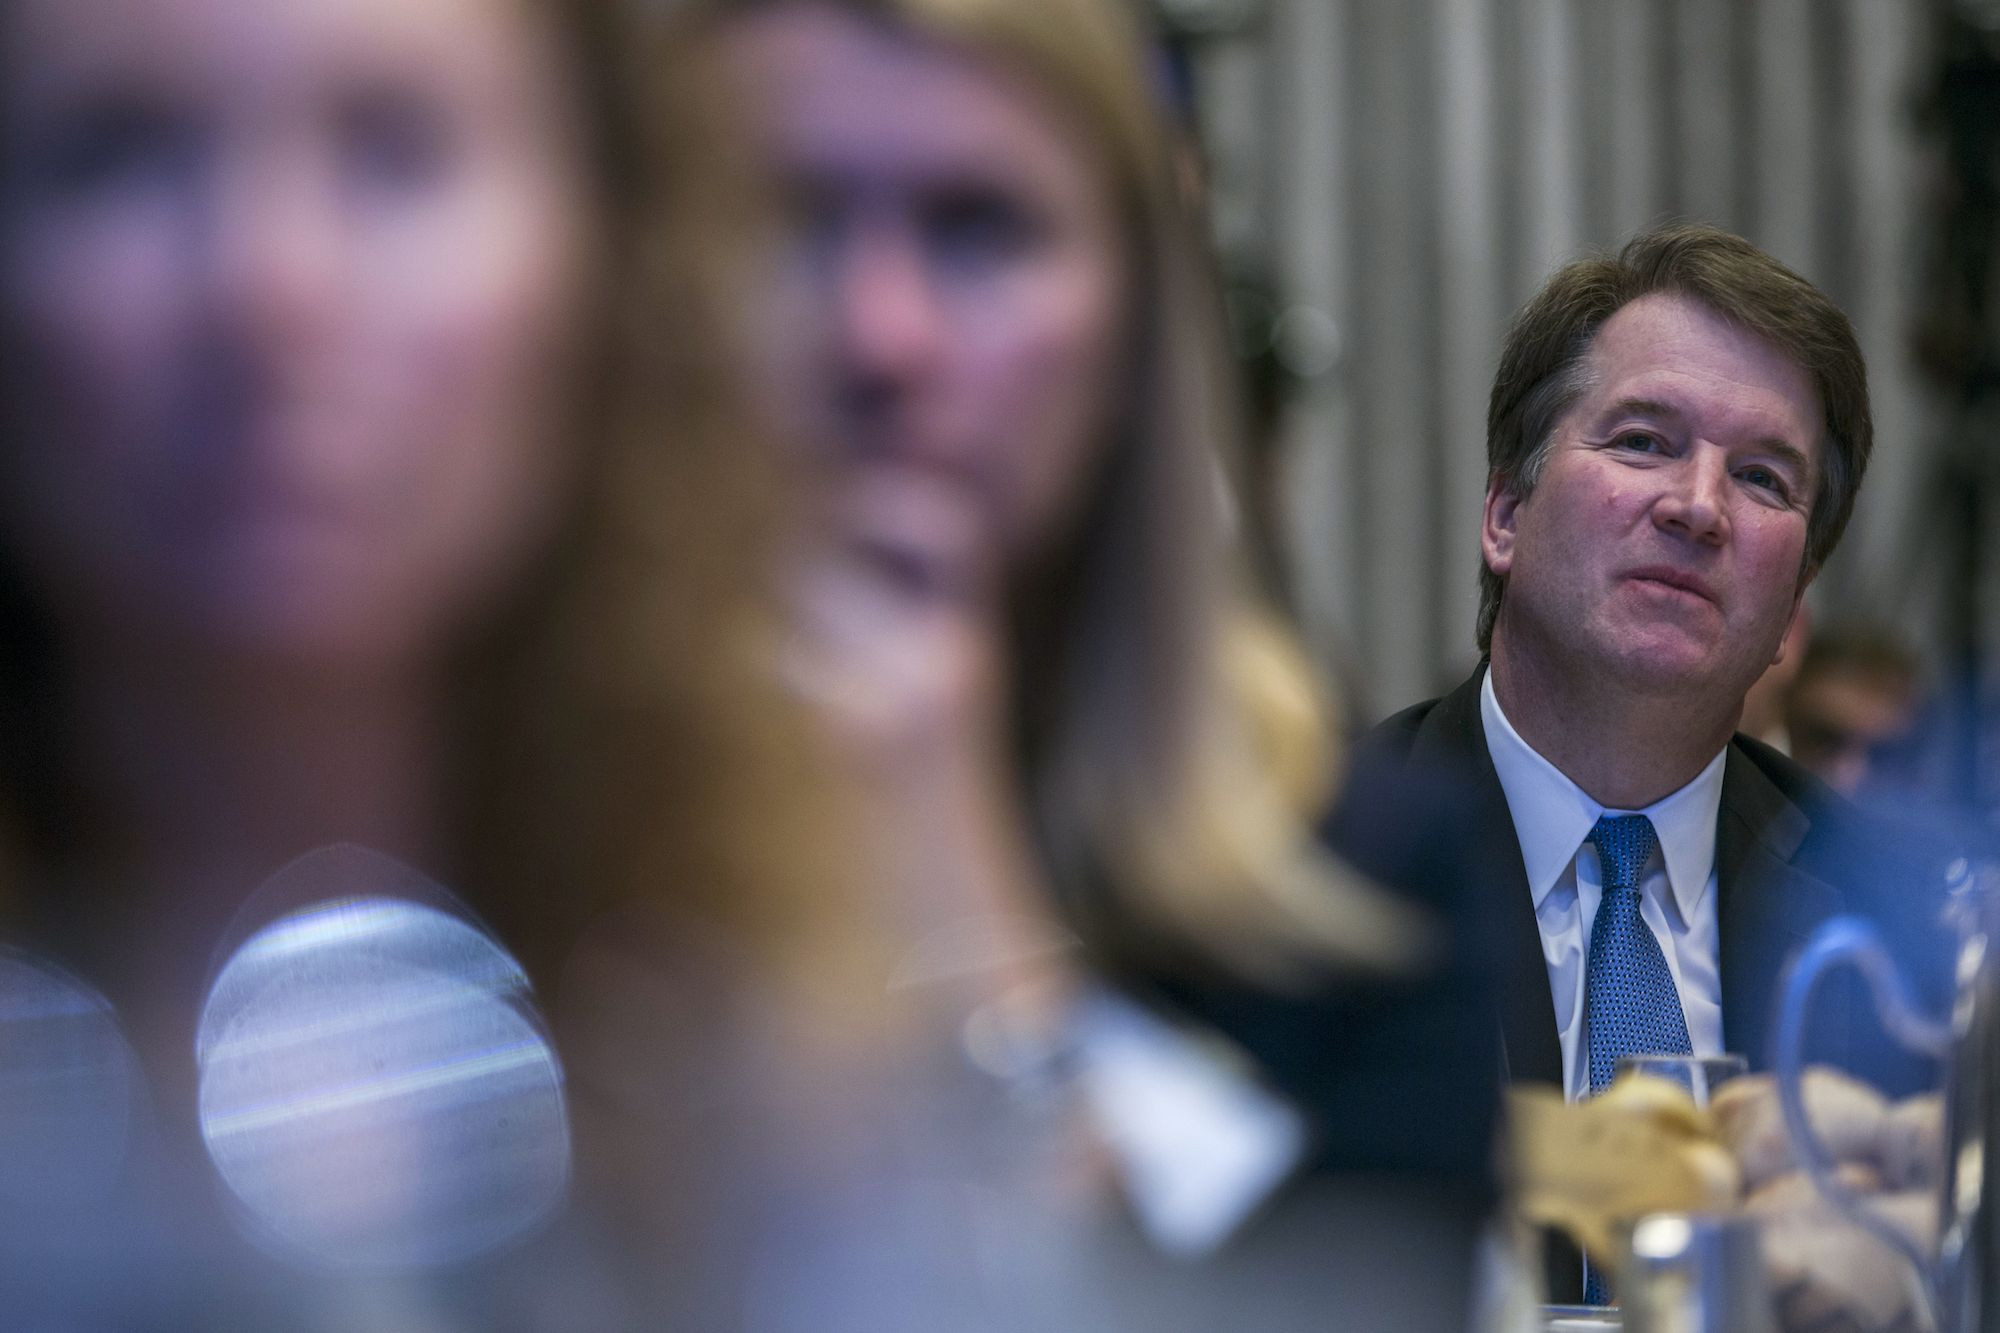 I Don't Mean to Shock You, But It Appears Brett Kavanaugh Is a Truthless Scoundrel